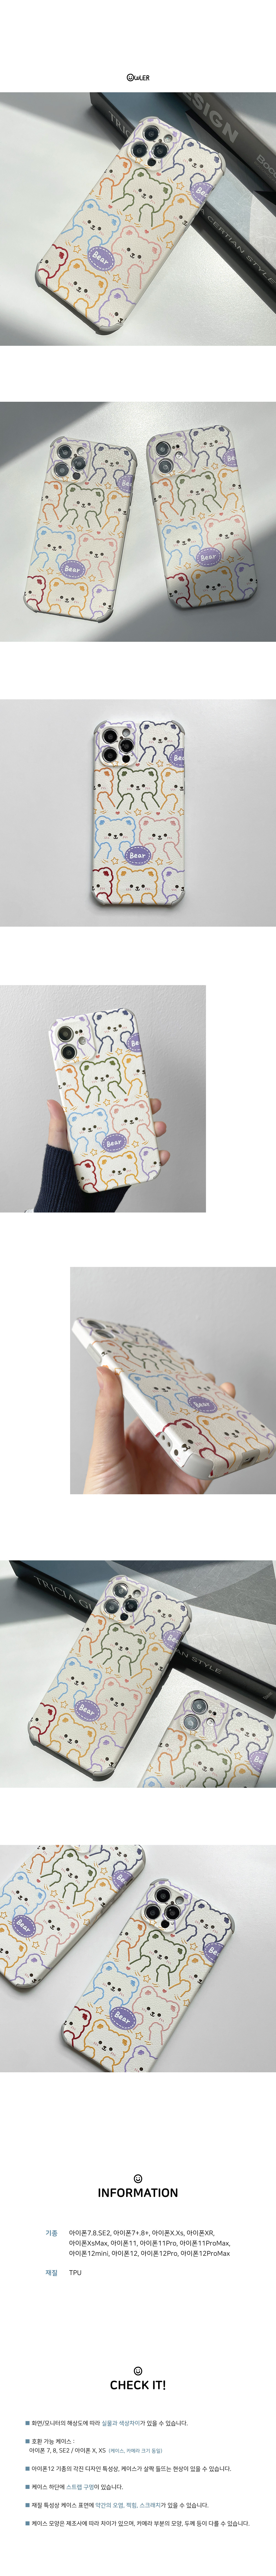 Shy Bear Pattern Full Cover iPhone Case